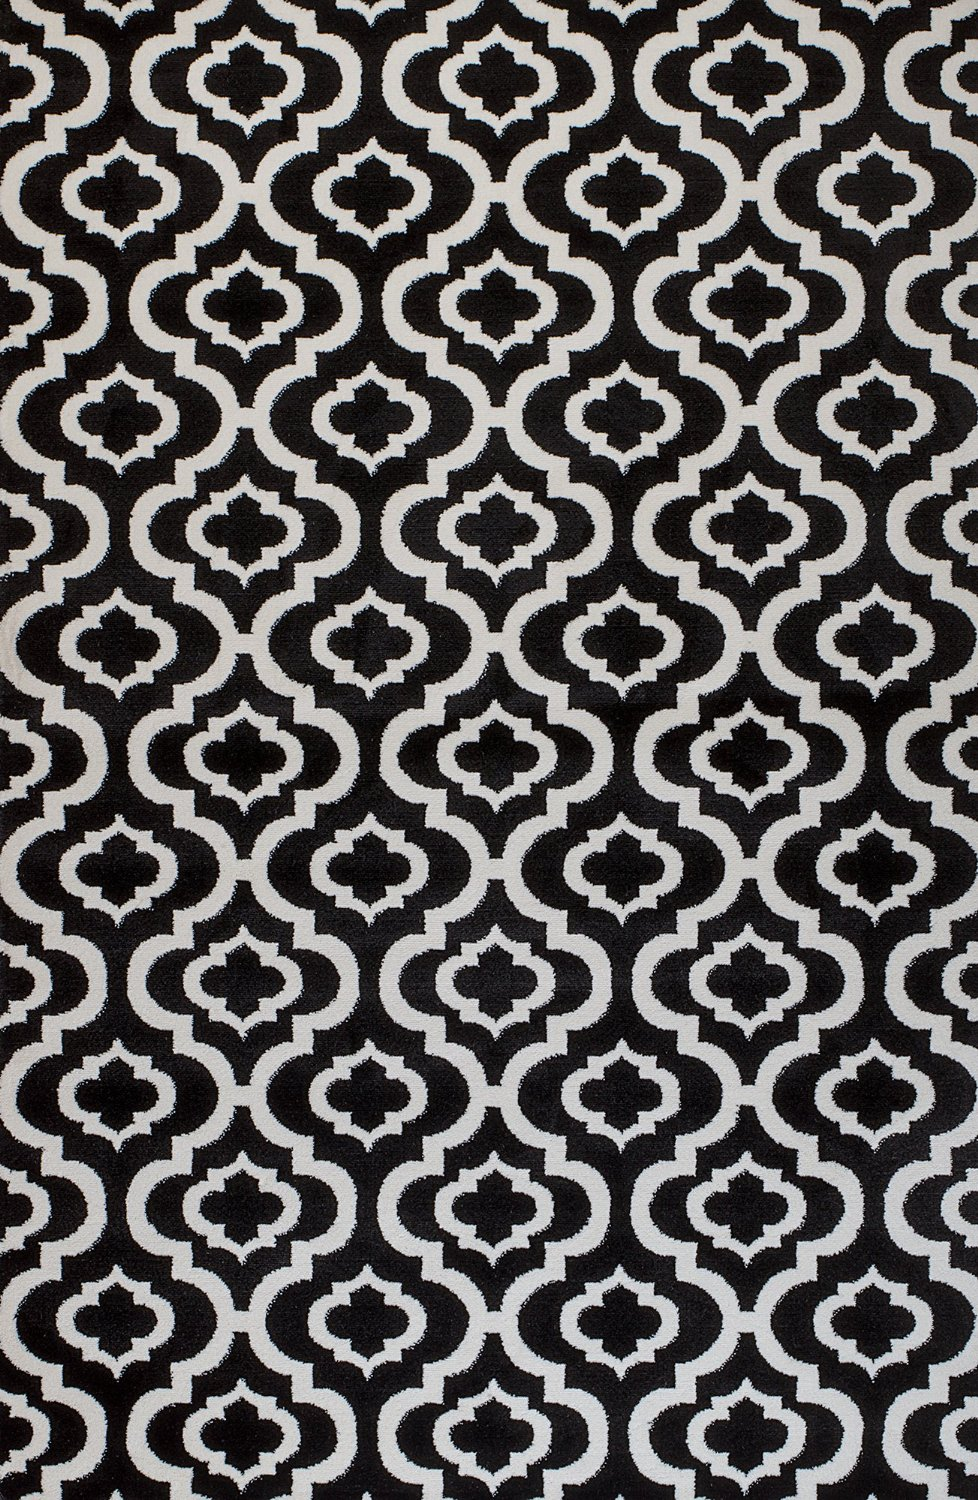 Black And White Living Room Decor: Where To Buy Bold Black And White Rugs